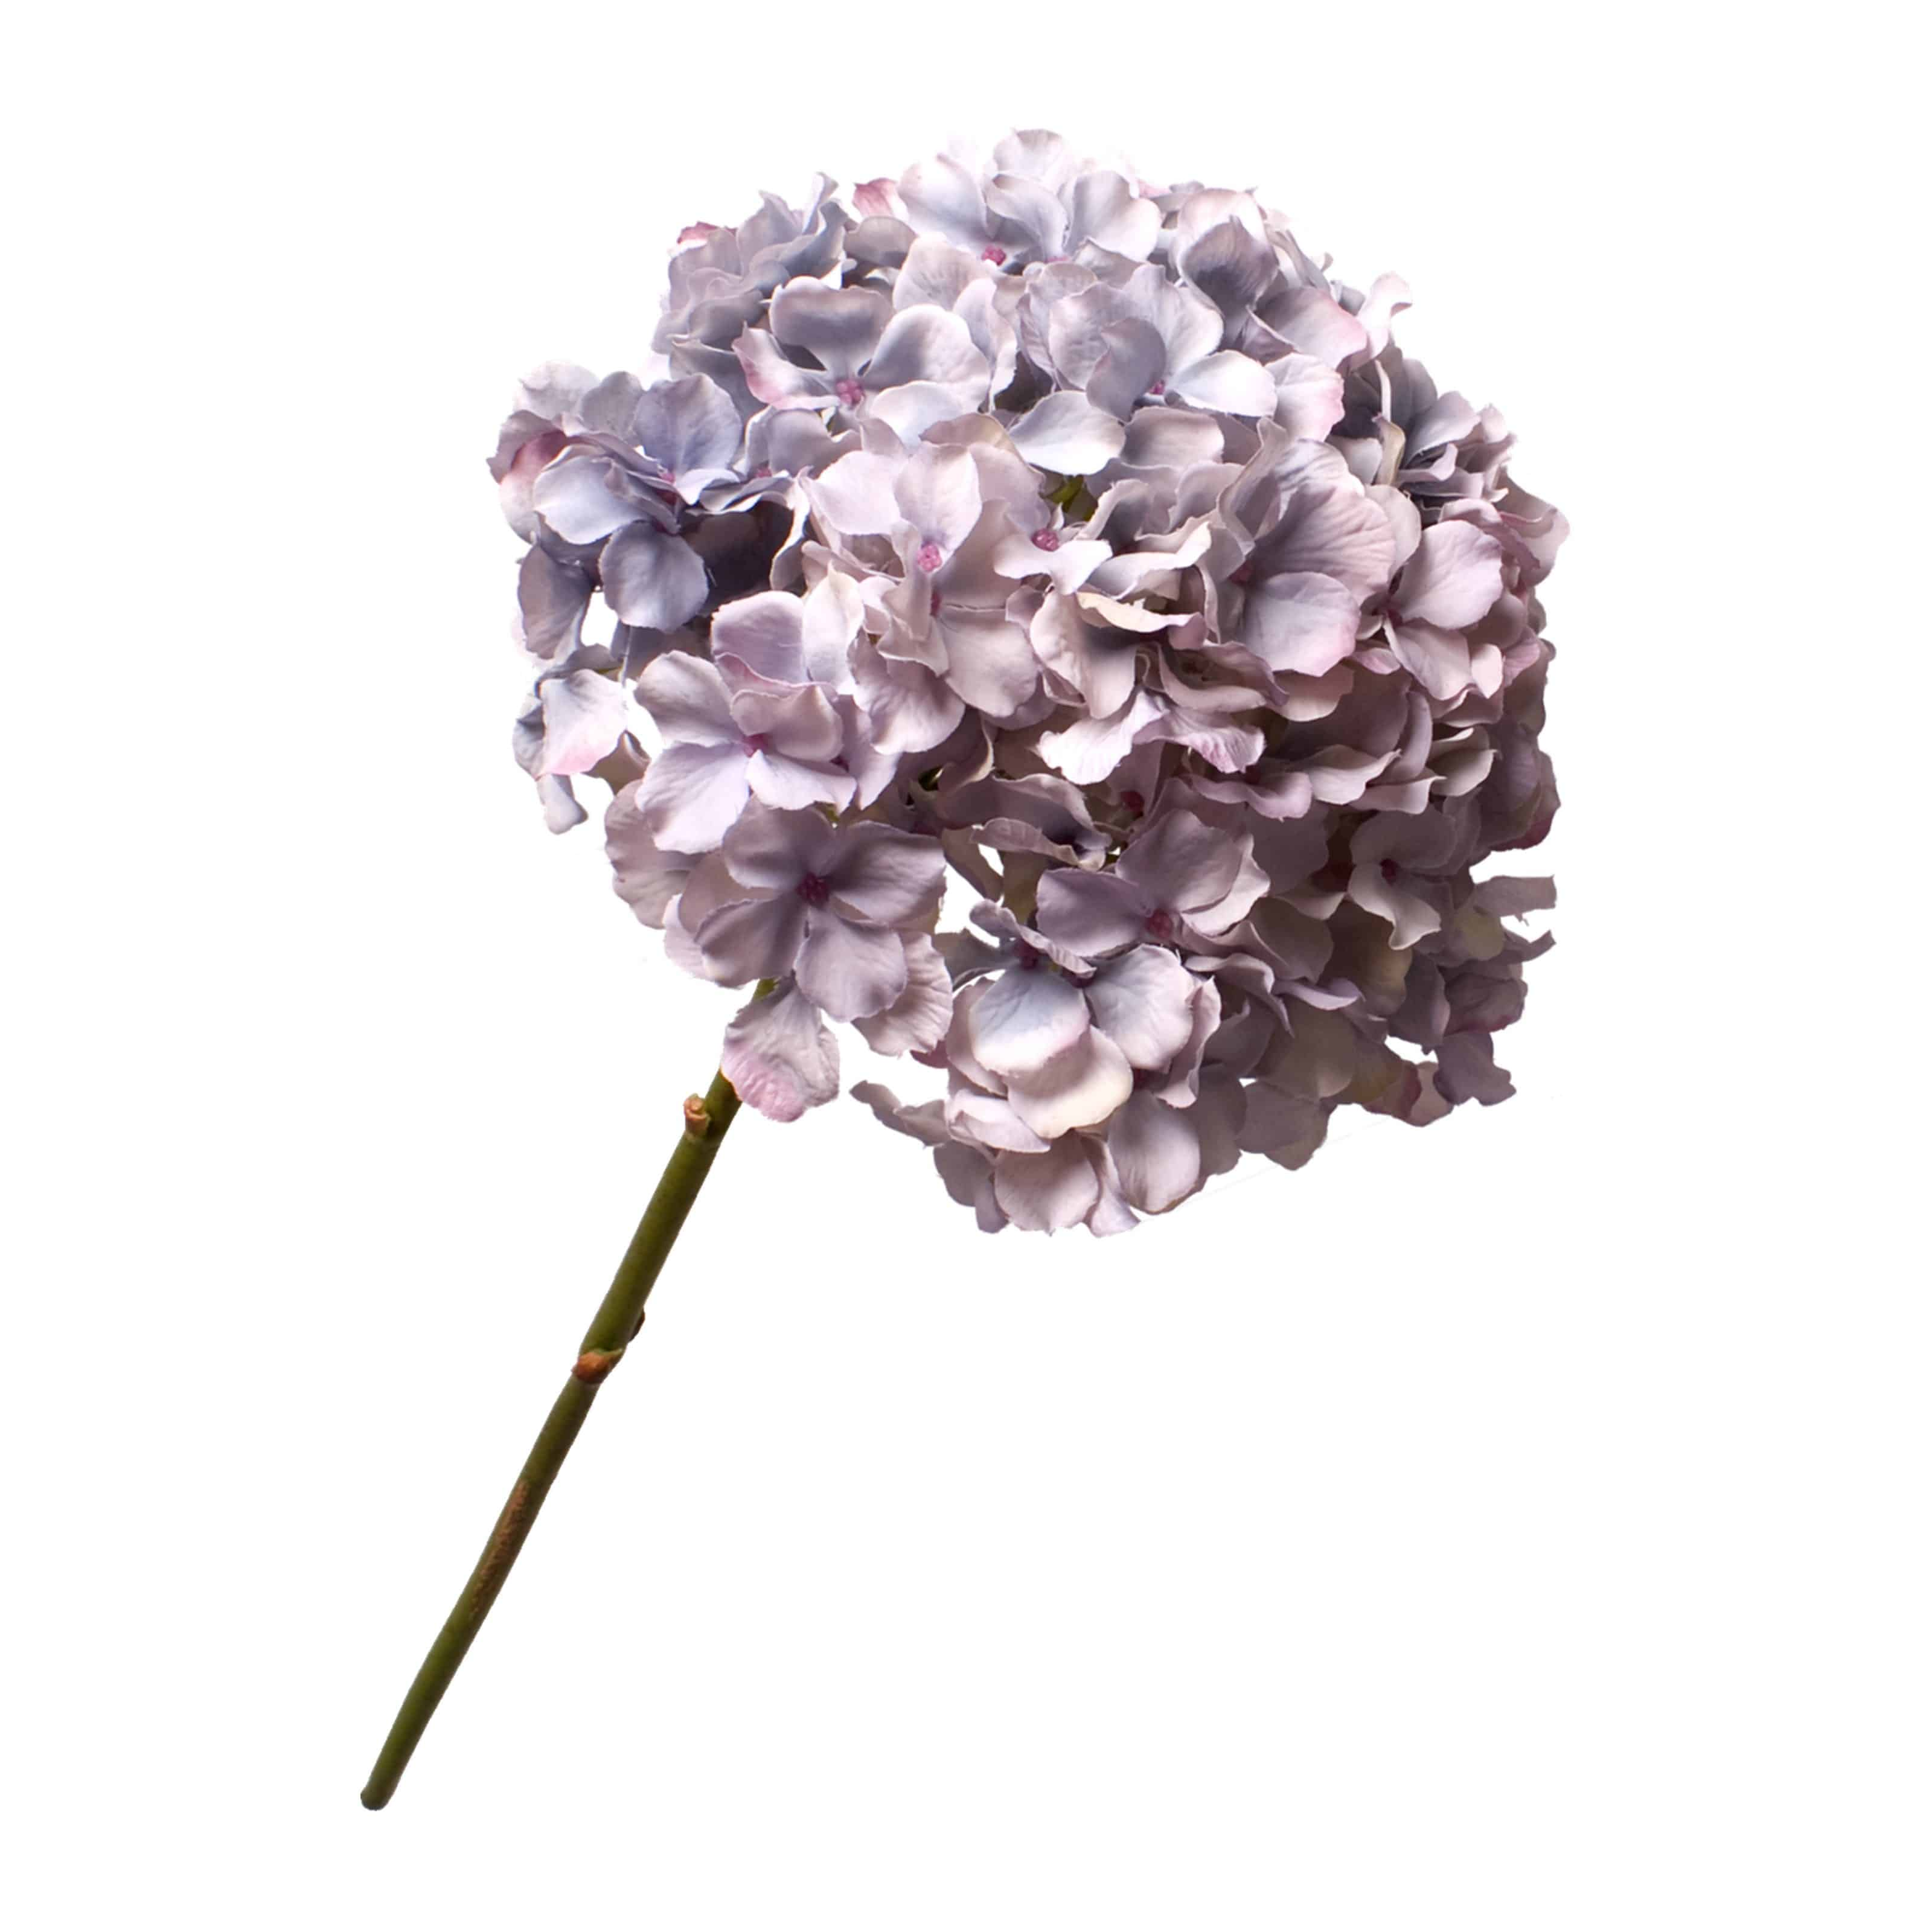 Buy silk hydrangea in authentic lavender blue. A complete arrangement in a single stem & wonderful addition to any arrangement.